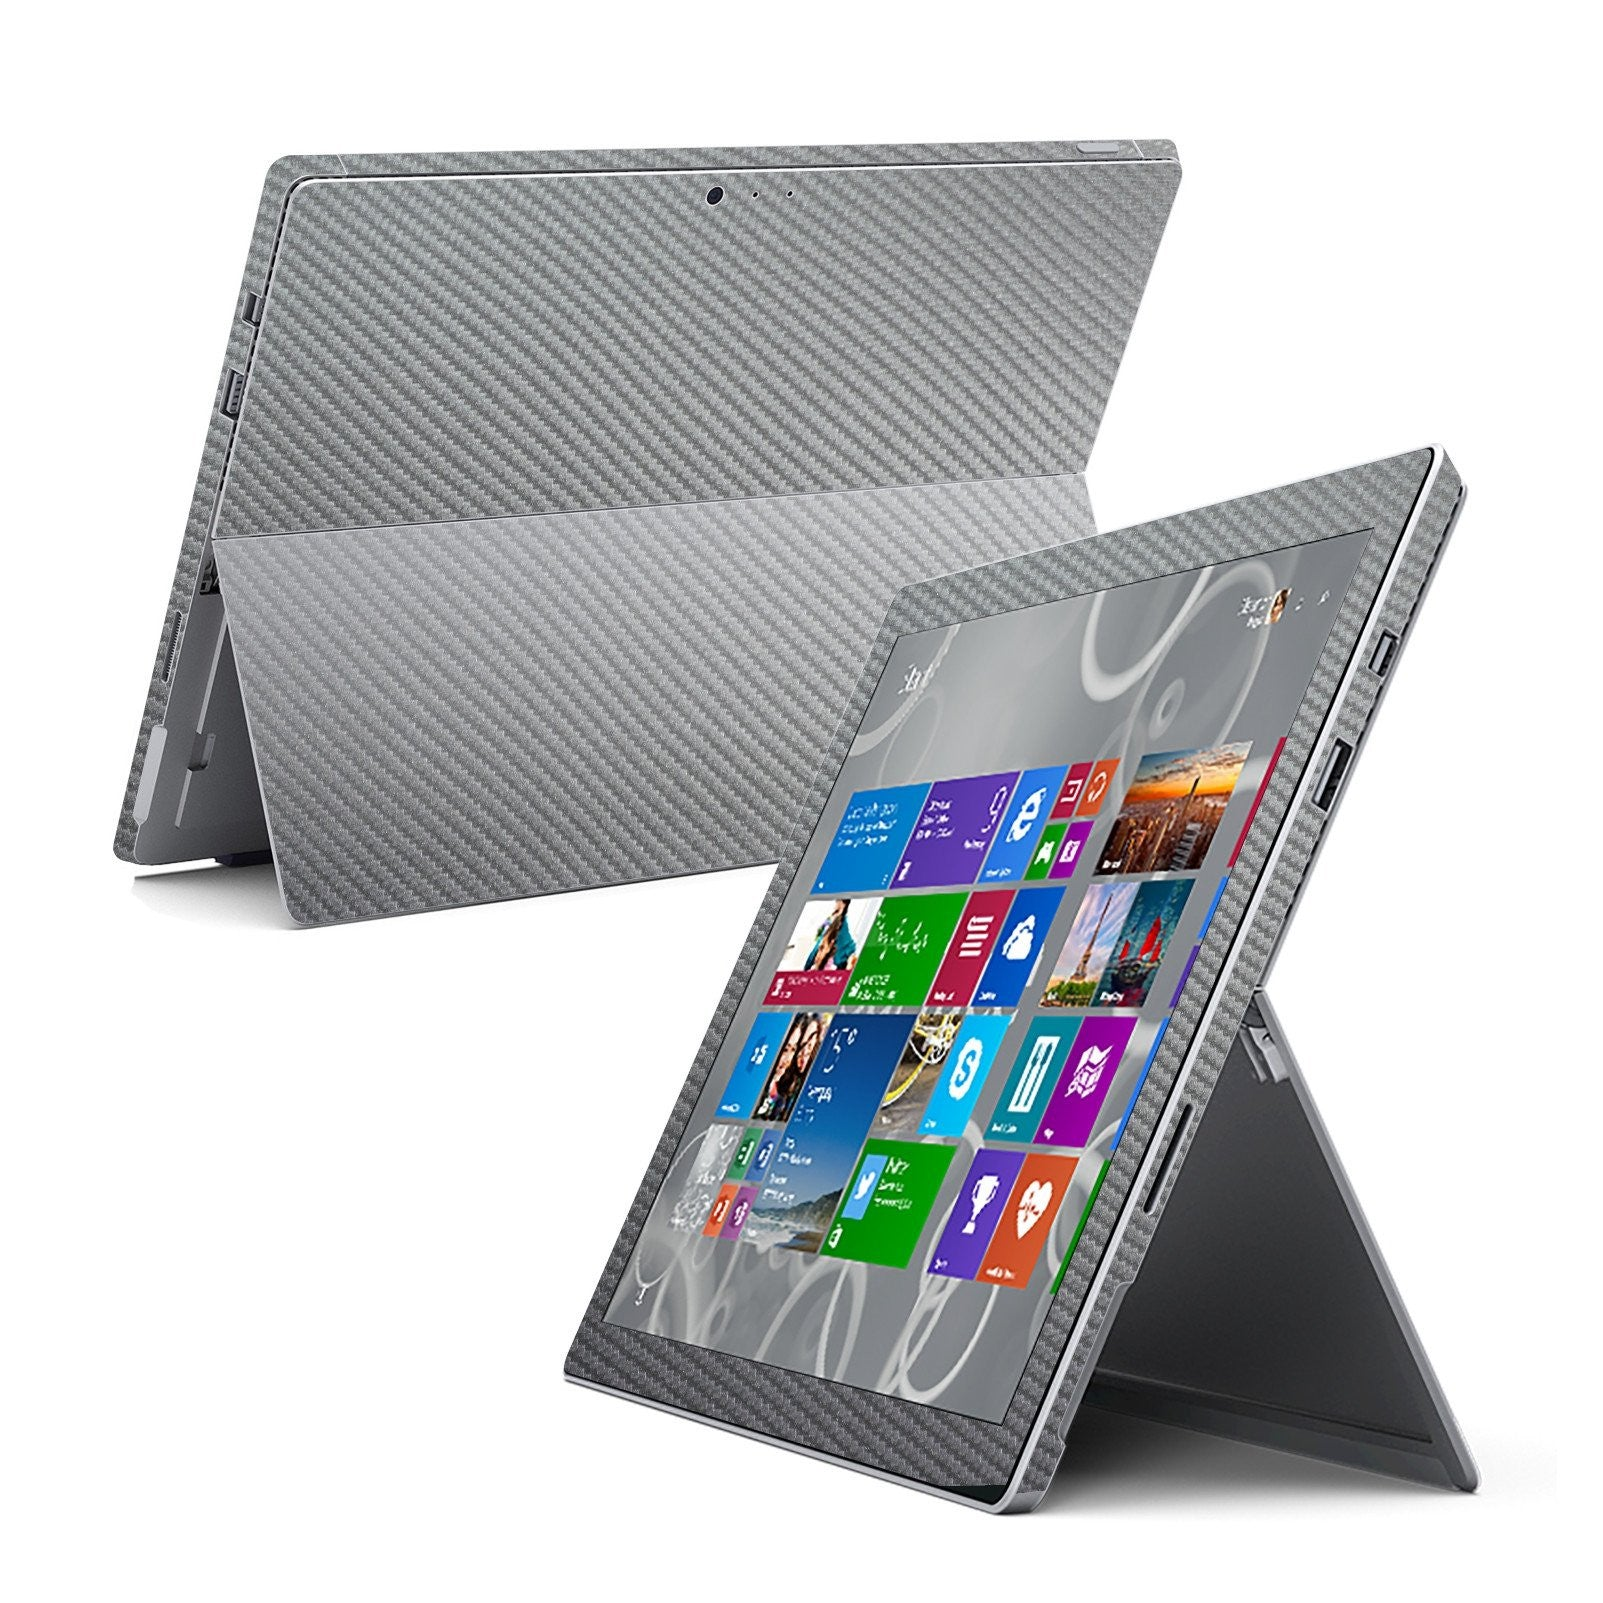 Microsoft Surface Pro 3 Metallic Grey CARBON Fibre Skin Wrap Sticker Cover Decal Protector by EasySkinz